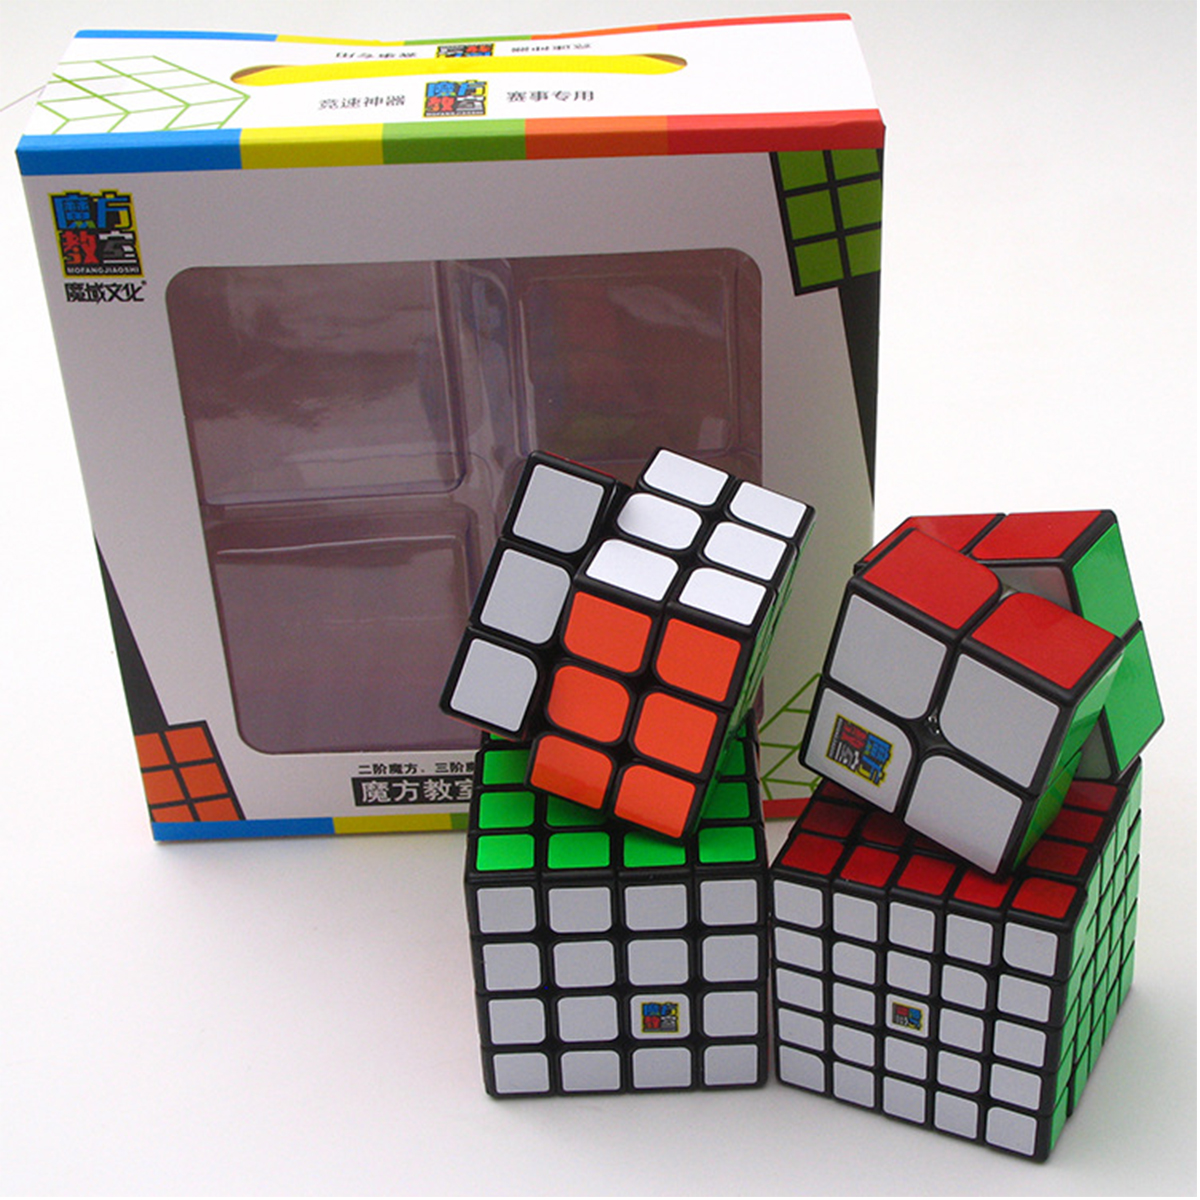 Tool Bags Best Birthday Gift 4pcs/set 2x2x2 3x3x3 4x4x4 5x5x5 Stickerless Magic Cube Set Puzzle Boys 2*2*2 3*3*3 4*4*4 5*5*5 Moyu Cubes